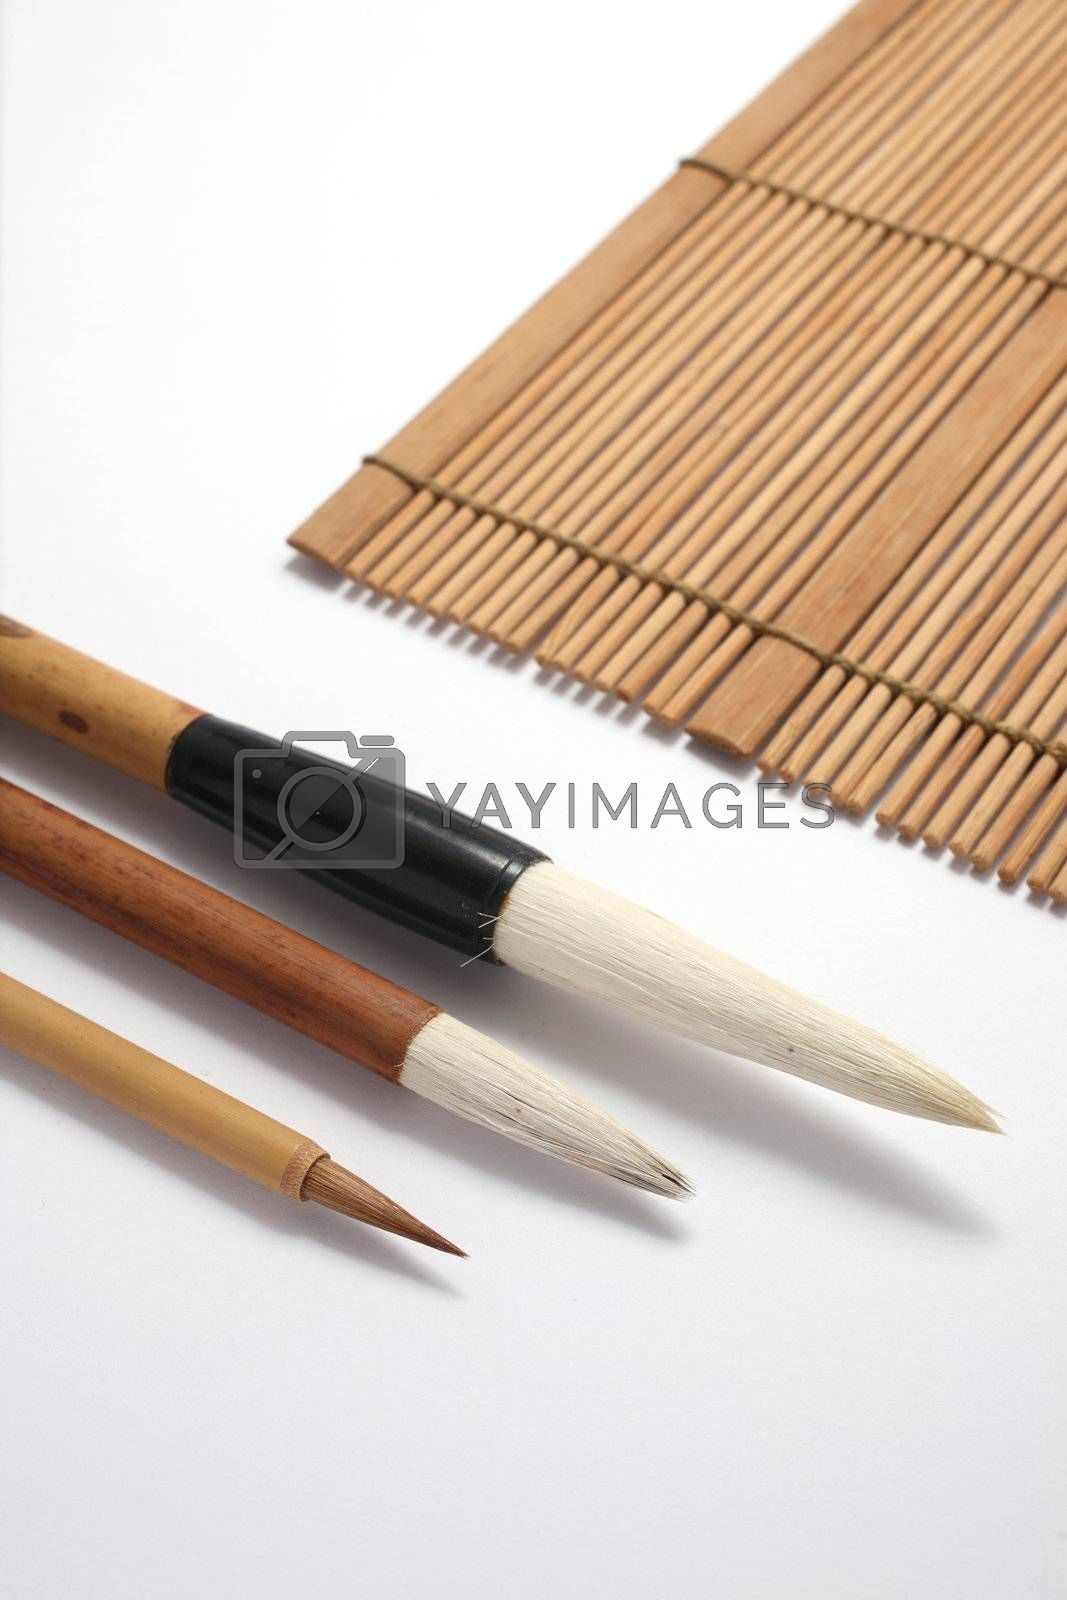 Chinese writing brush by leungchopan